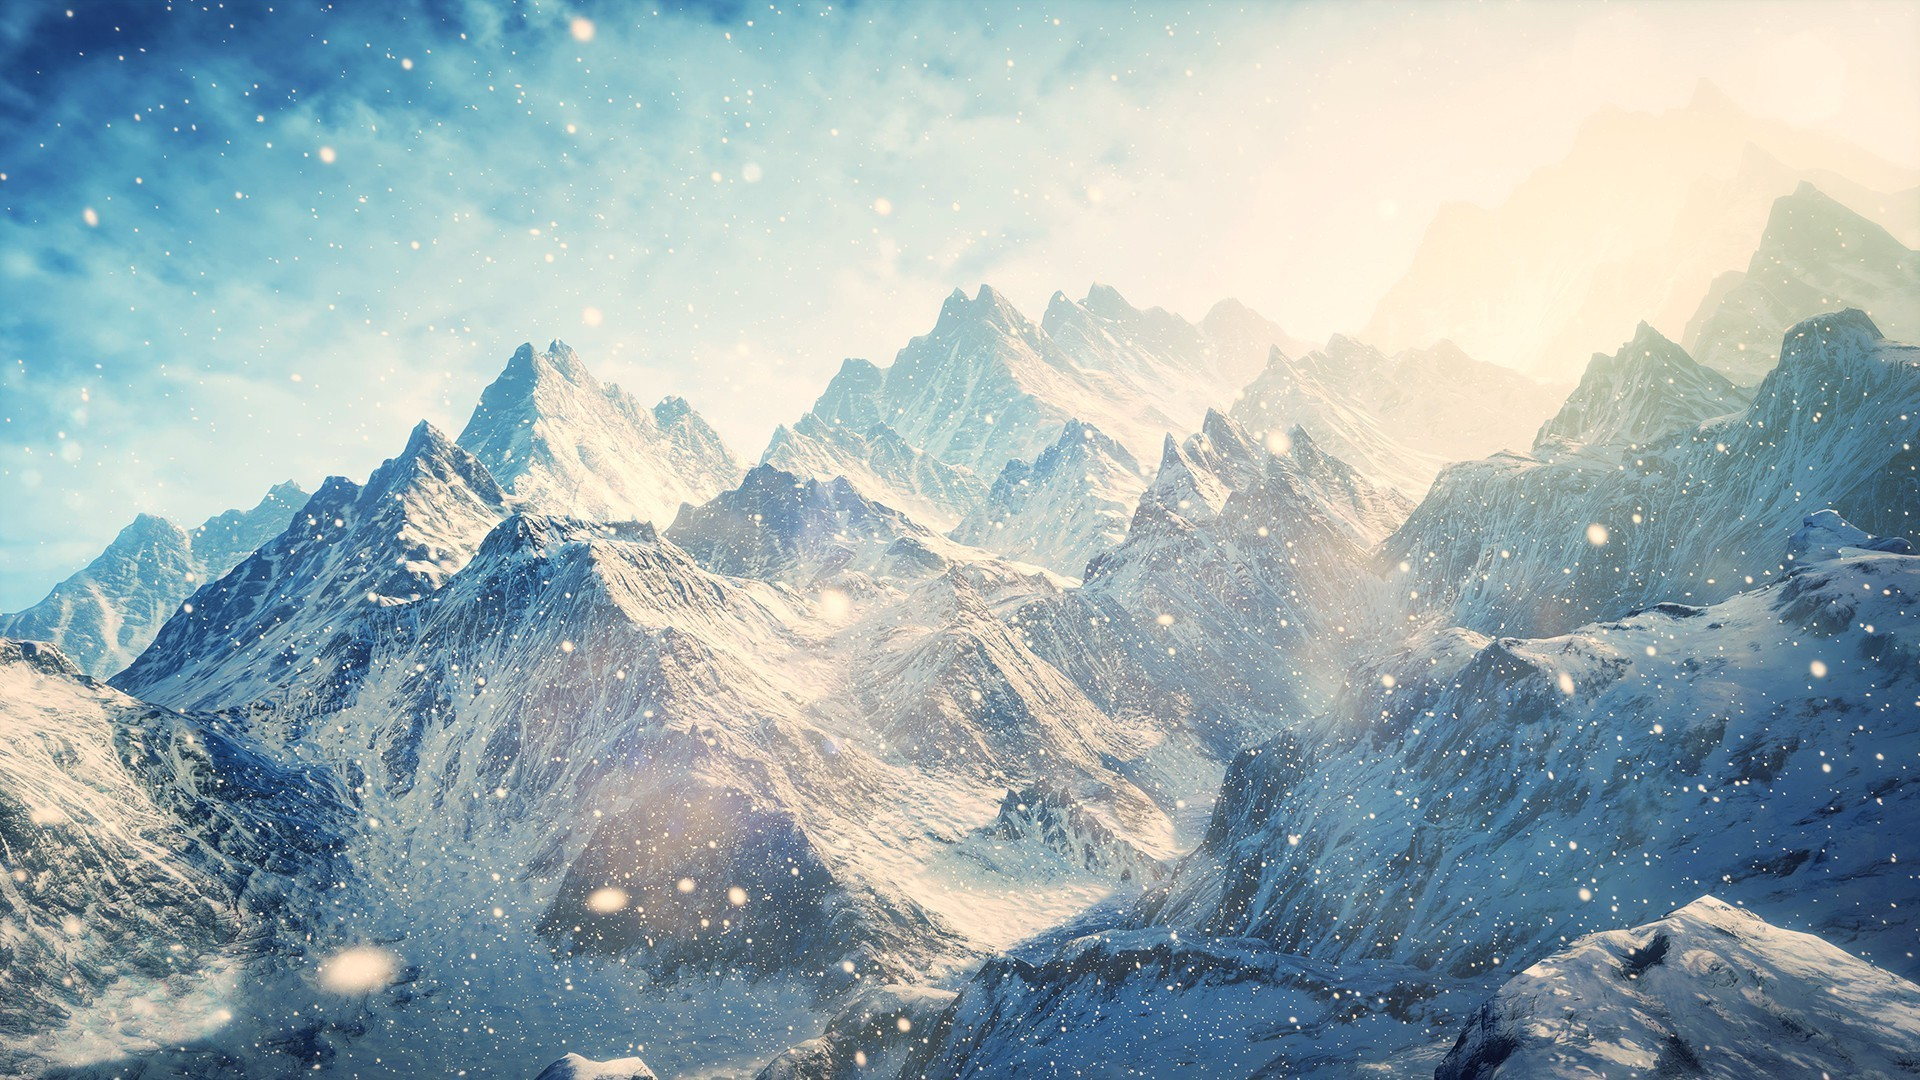 snow mountain wallpaper hd (67+ images)